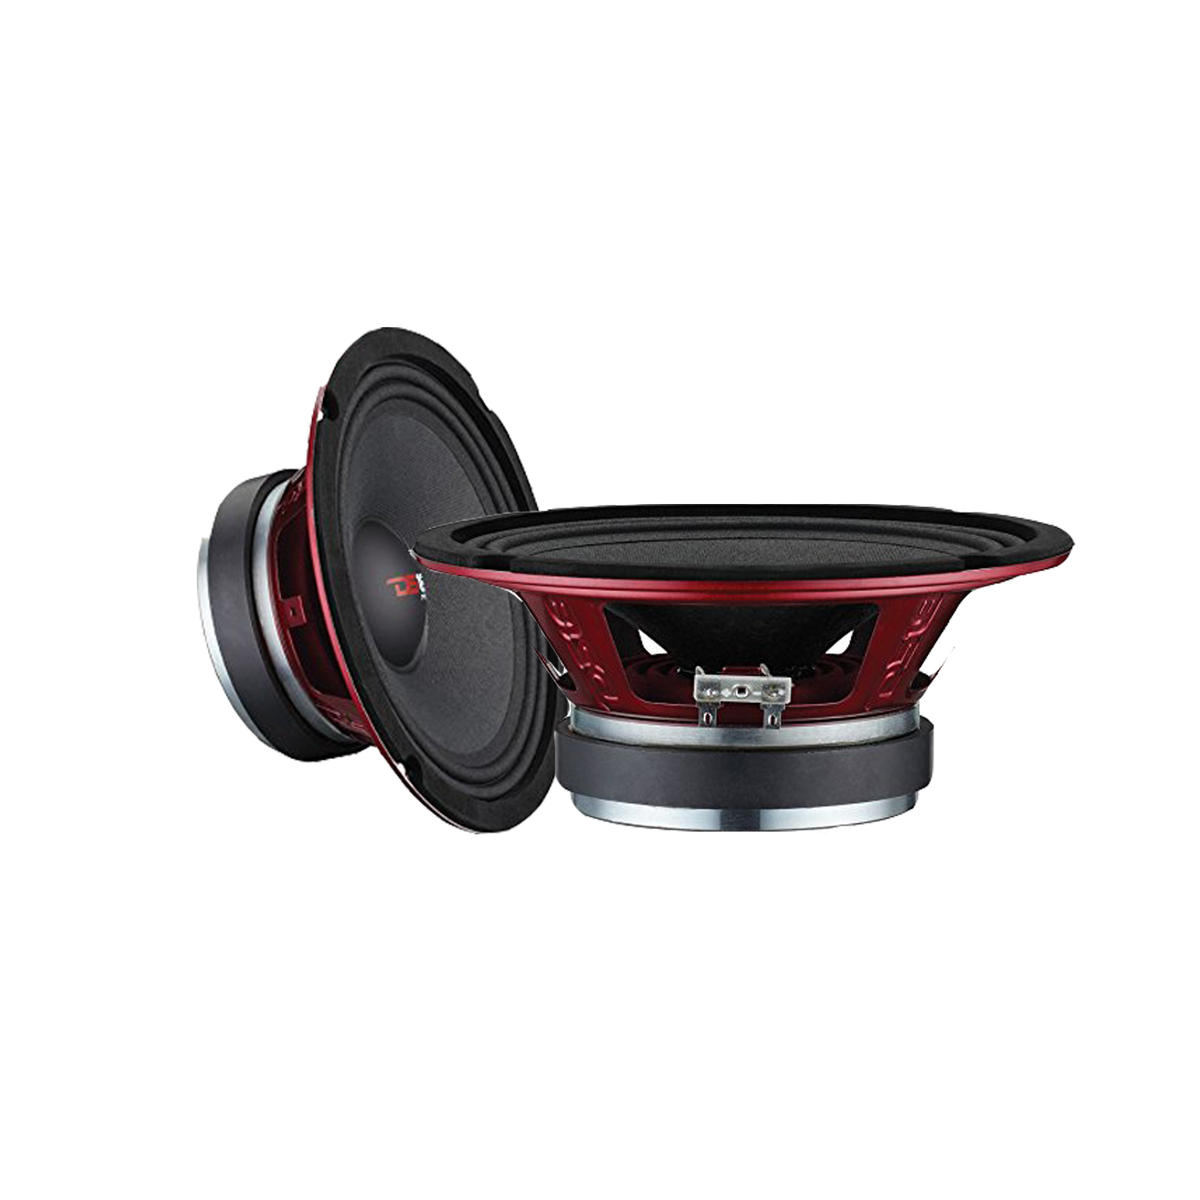 "DS18 PRO-X6MSE Car Pro Audio 900 Watts 6"" Inch Midranges Loud Speakers"